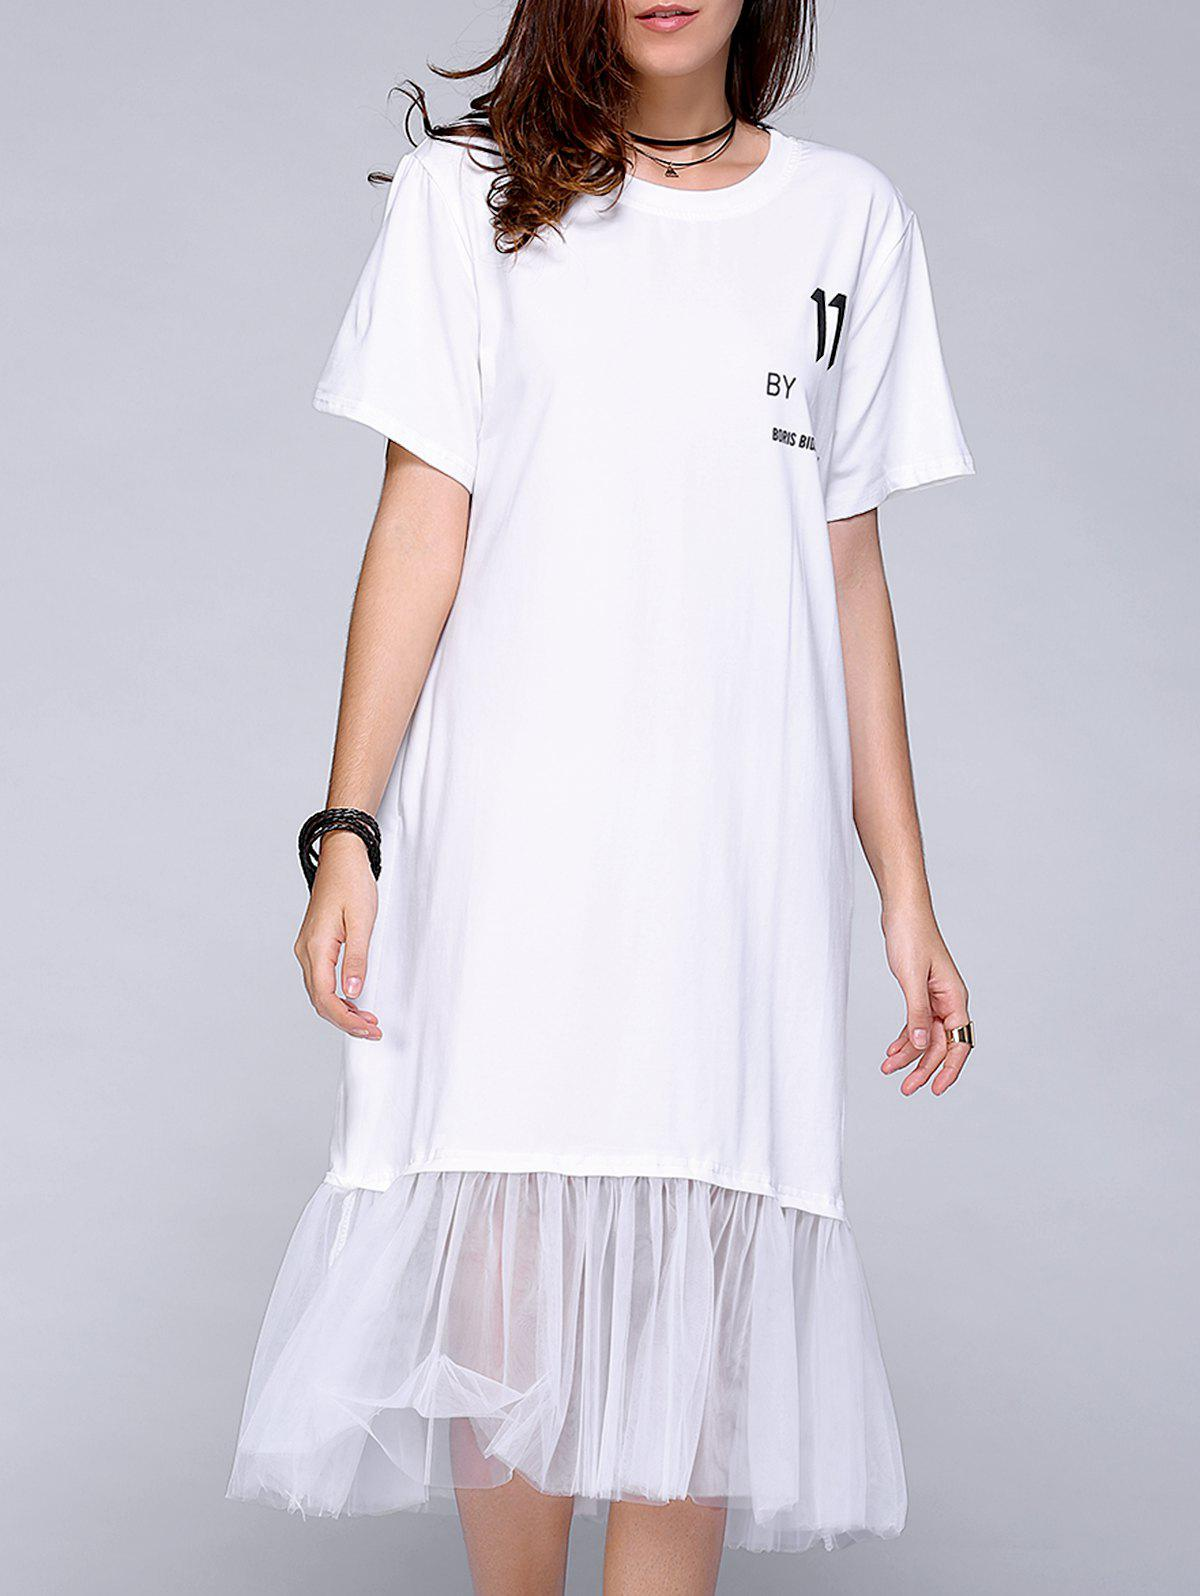 Brief Letter Print Short Sleeve Gauze Spliced Dress For Women